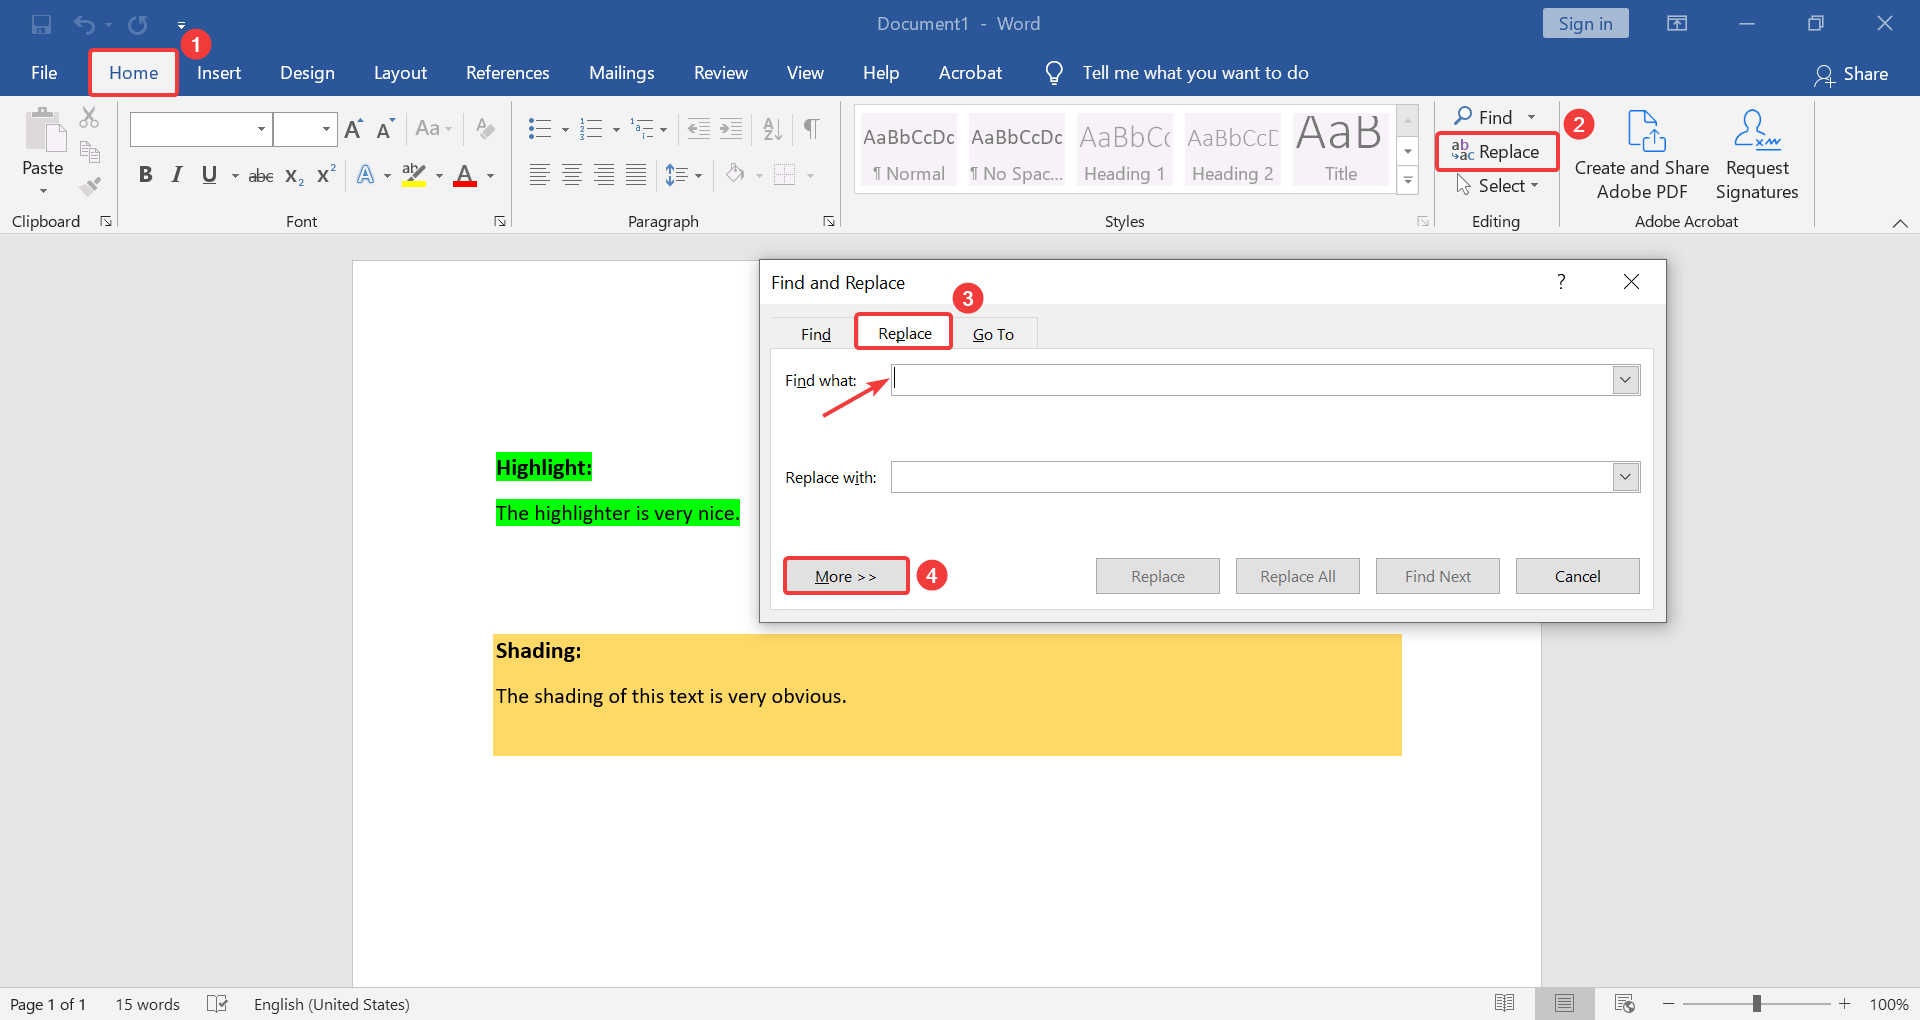 Replace function to remove highlight